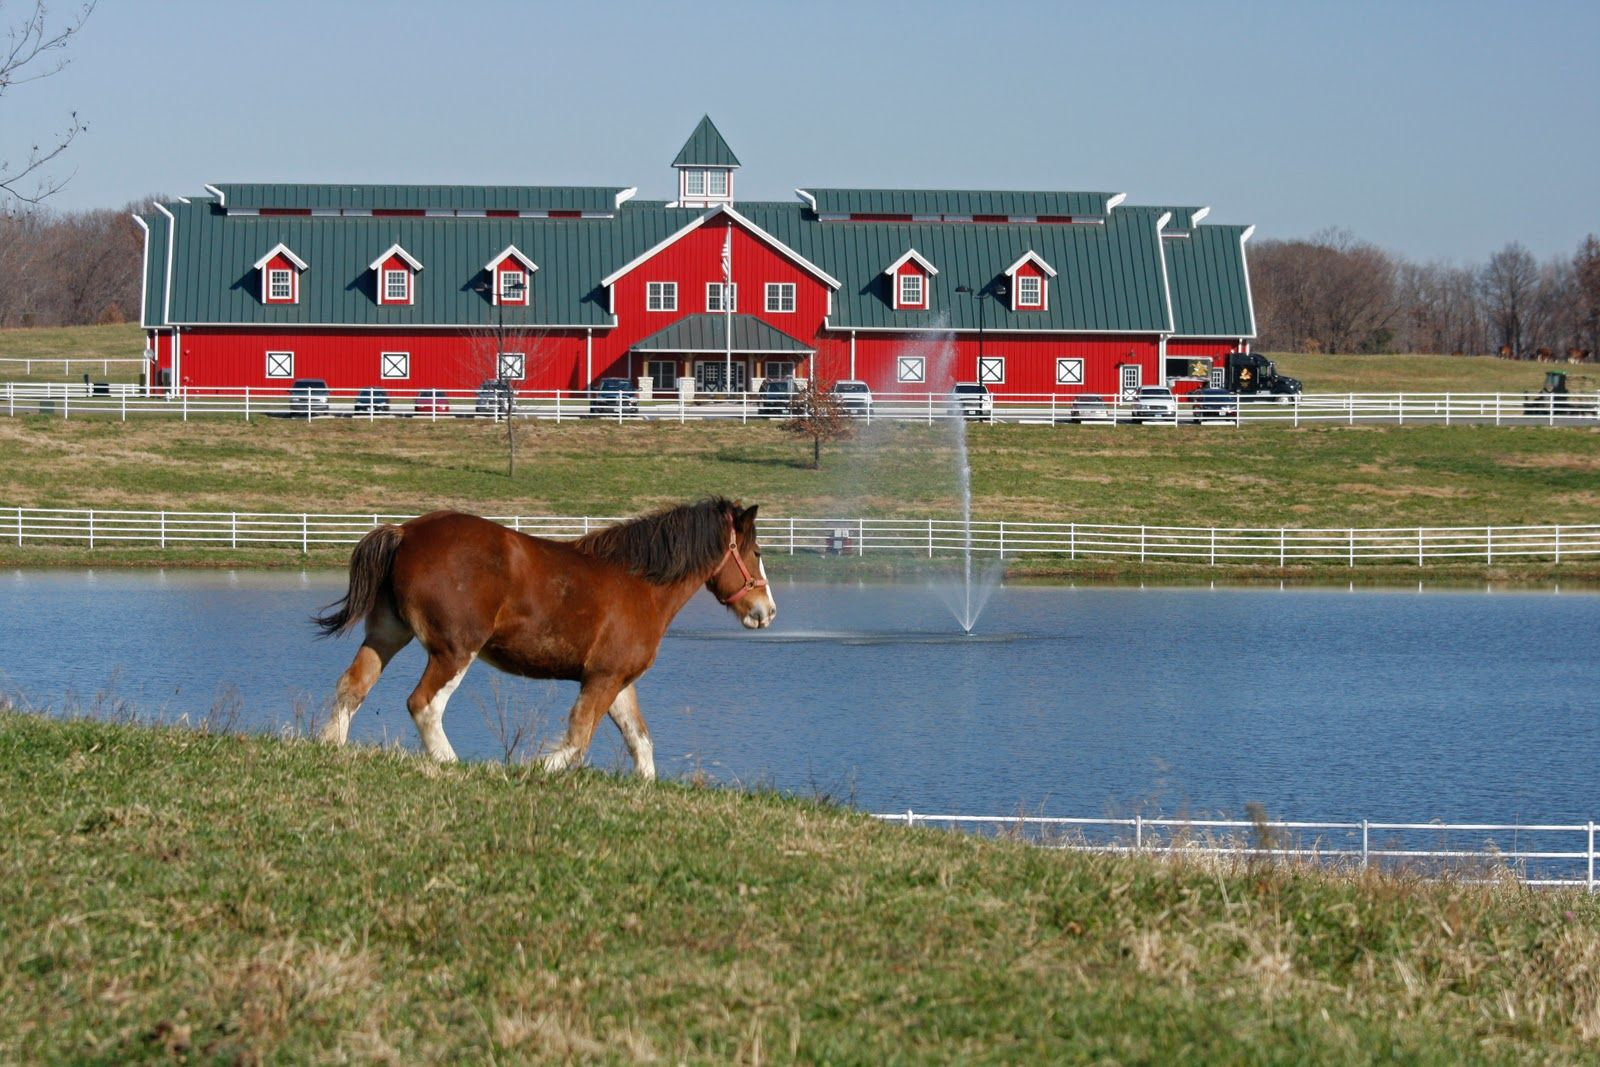 Warm Springs Ranch - Home of the Budweiser Clydesdales in Booneville, MO is home to roughly half of AB's herd of Clydesdales that numbers around 200. Open for tours April thru October. Tours last about 1.5 hrs. and are offered daily except Wednesday at 10am and 2pm. Visitors 21 and older can sample a Budweiser beer at the end of the tour (except on Sunday). Reservations are required. Call (888) 972-5933 or register online at www.warmspringsranch.com.